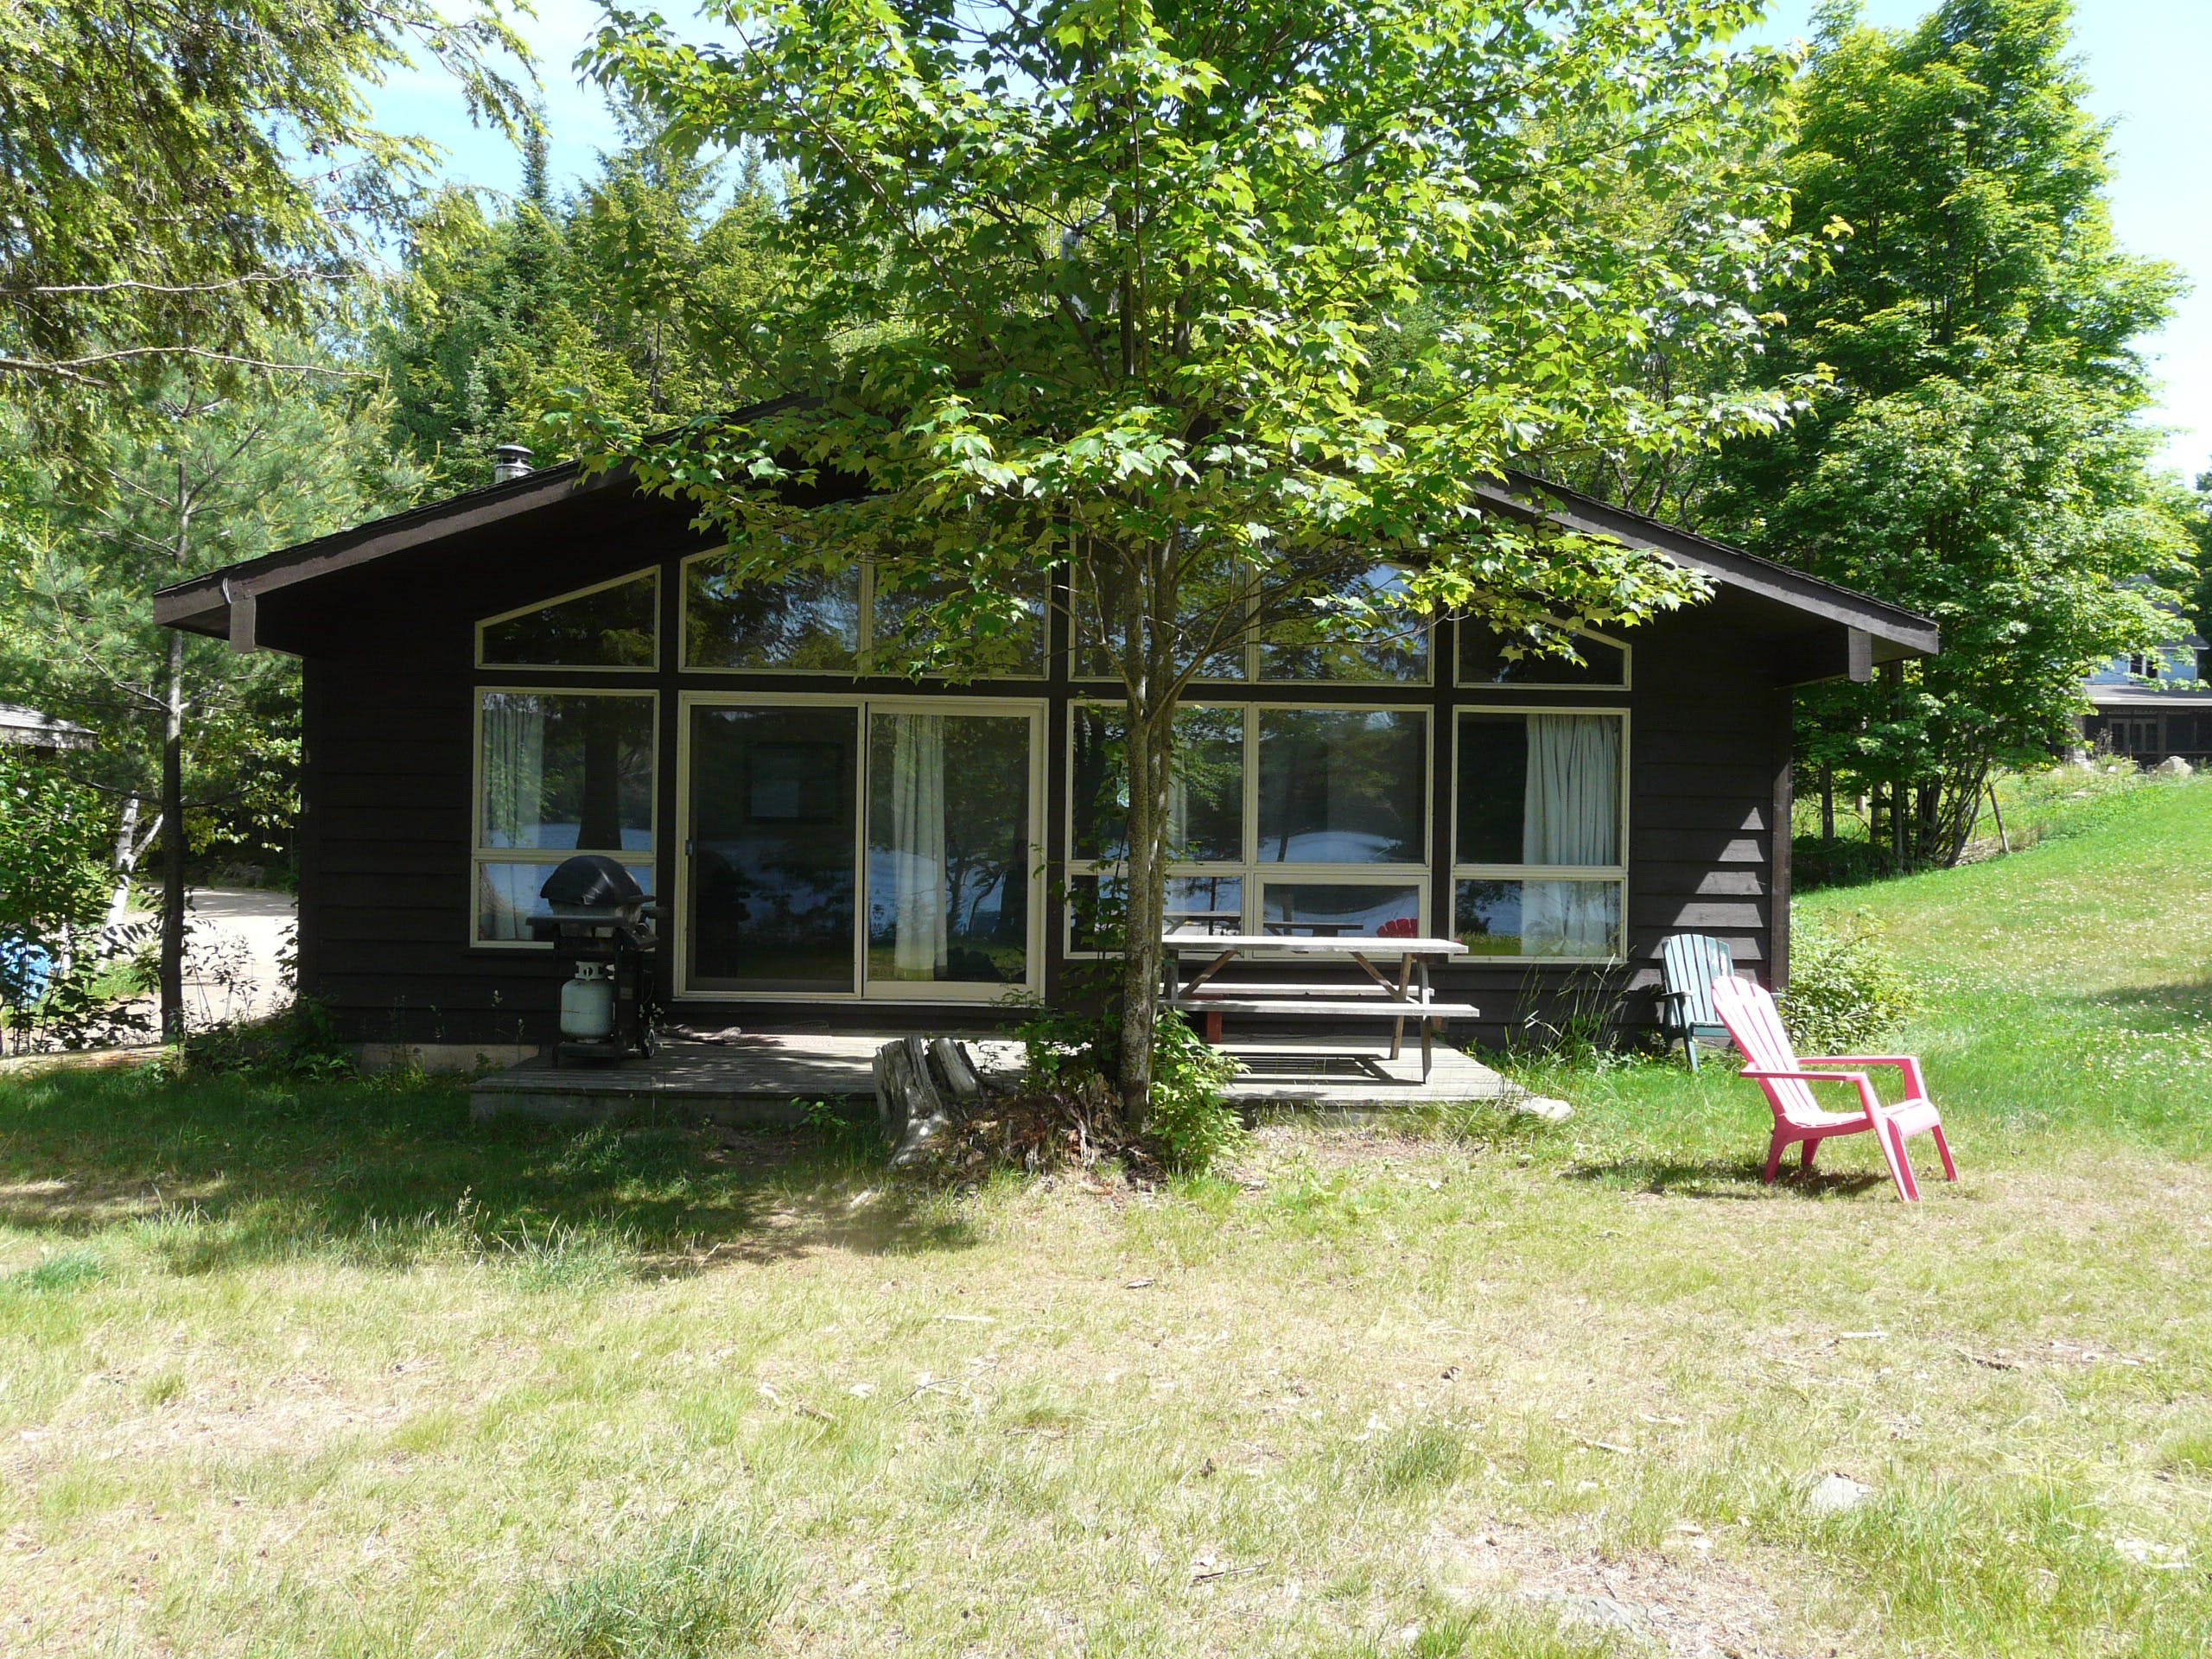 Family cottage vacation rentals nestled in the woods on beautiful Walker Lake in Muskoka near Huntsville and Algonquin Park